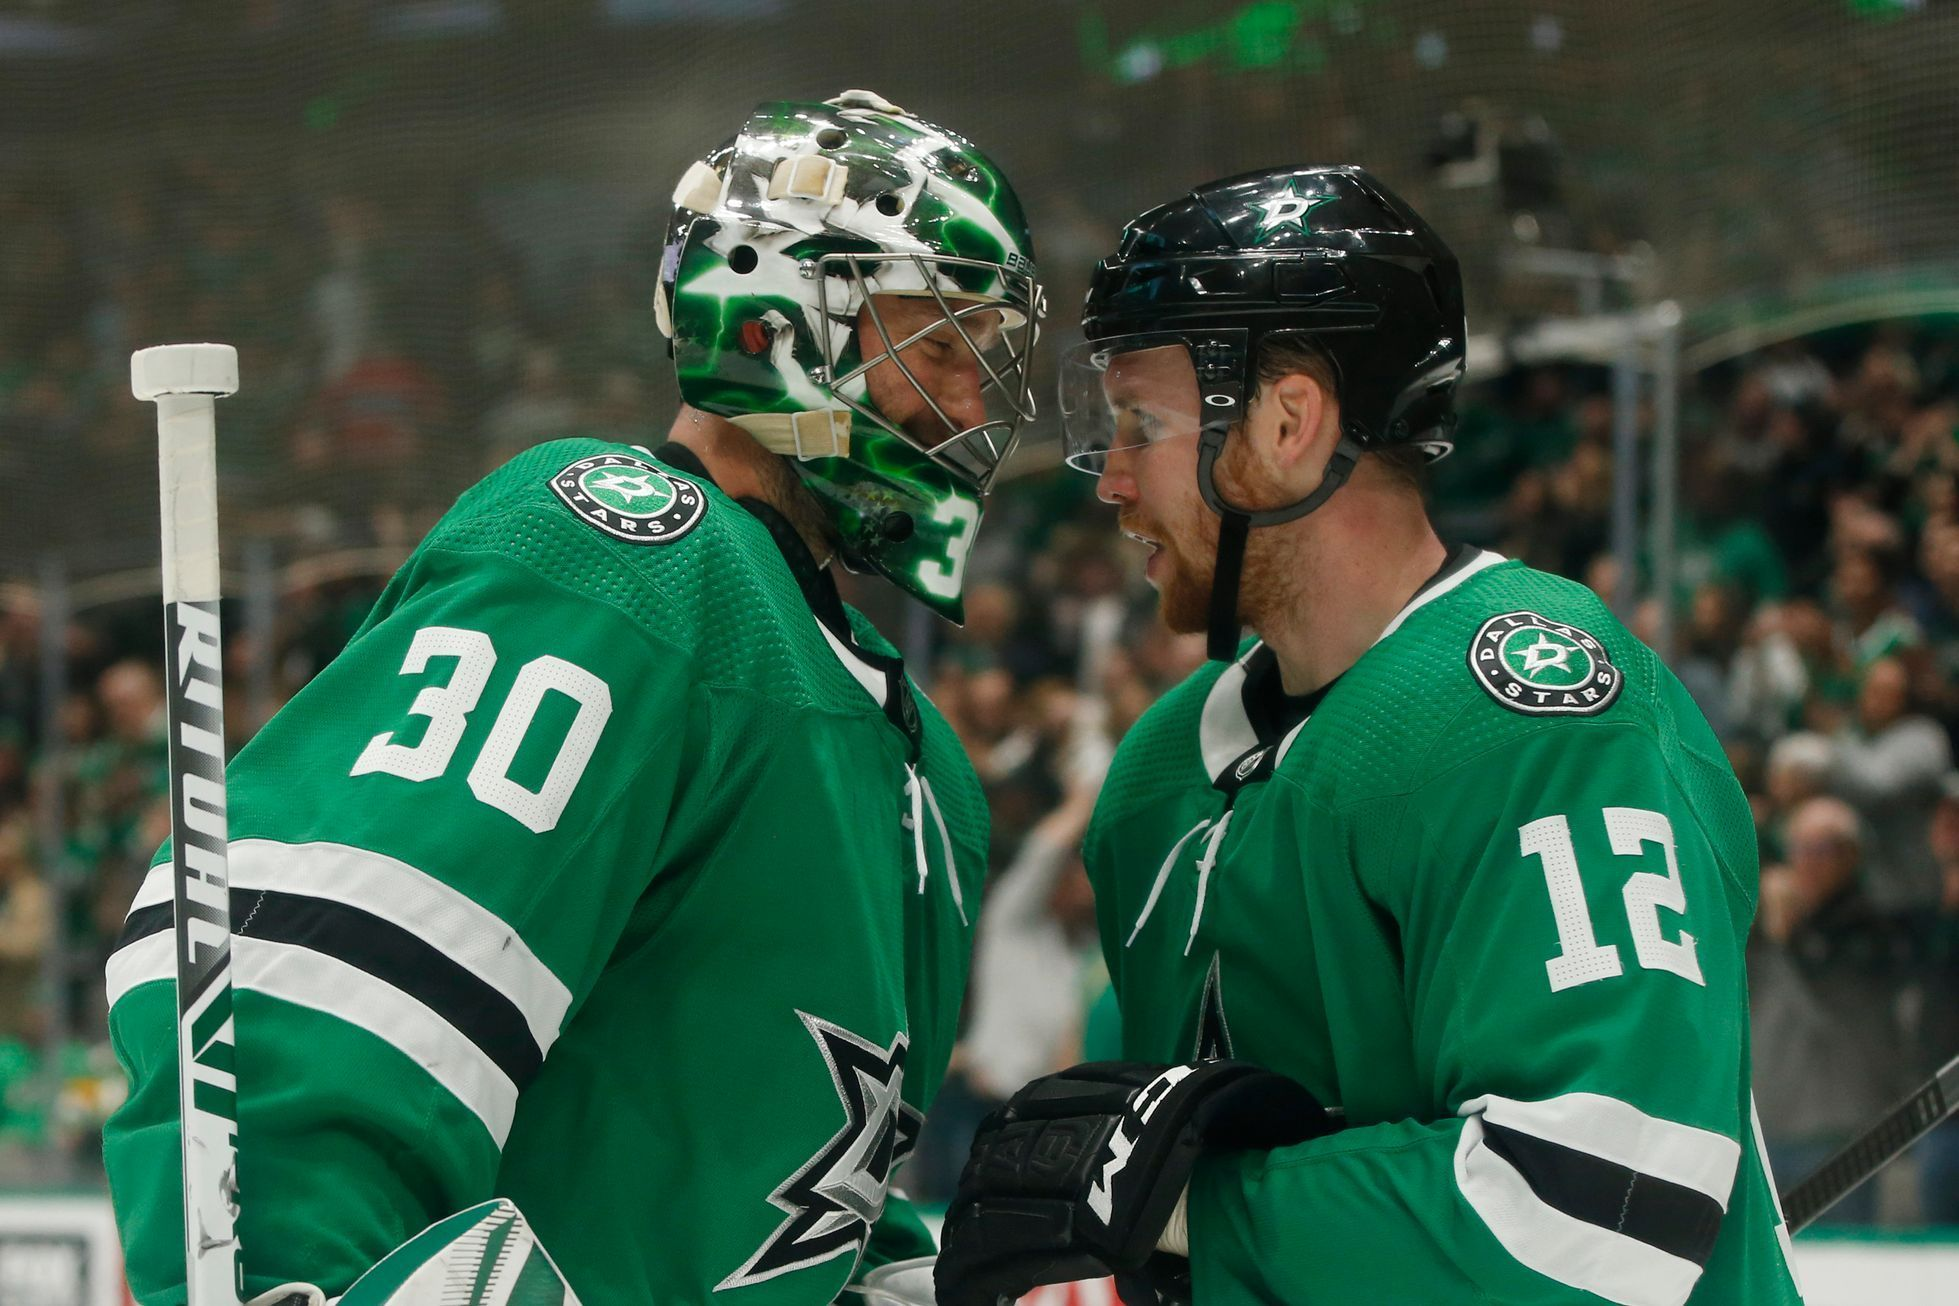 NHL: Montreal Canadiens at Dallas Stars